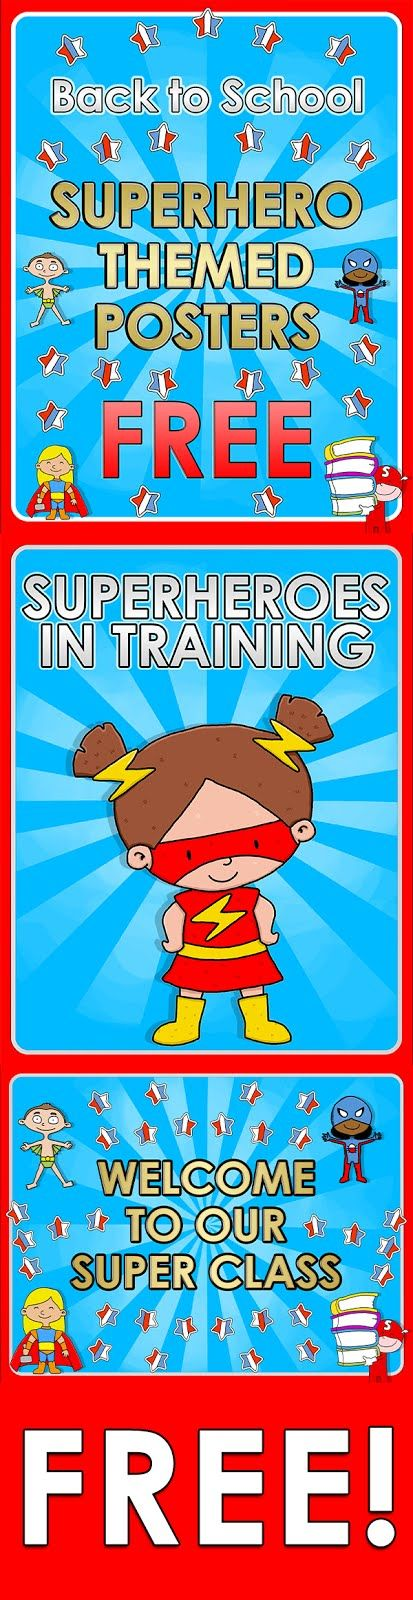 Superhero Themed Posters - FREE   CLICK HERE TO CHECK THIS MATERIAL! :)  back to school Free posters super superhero